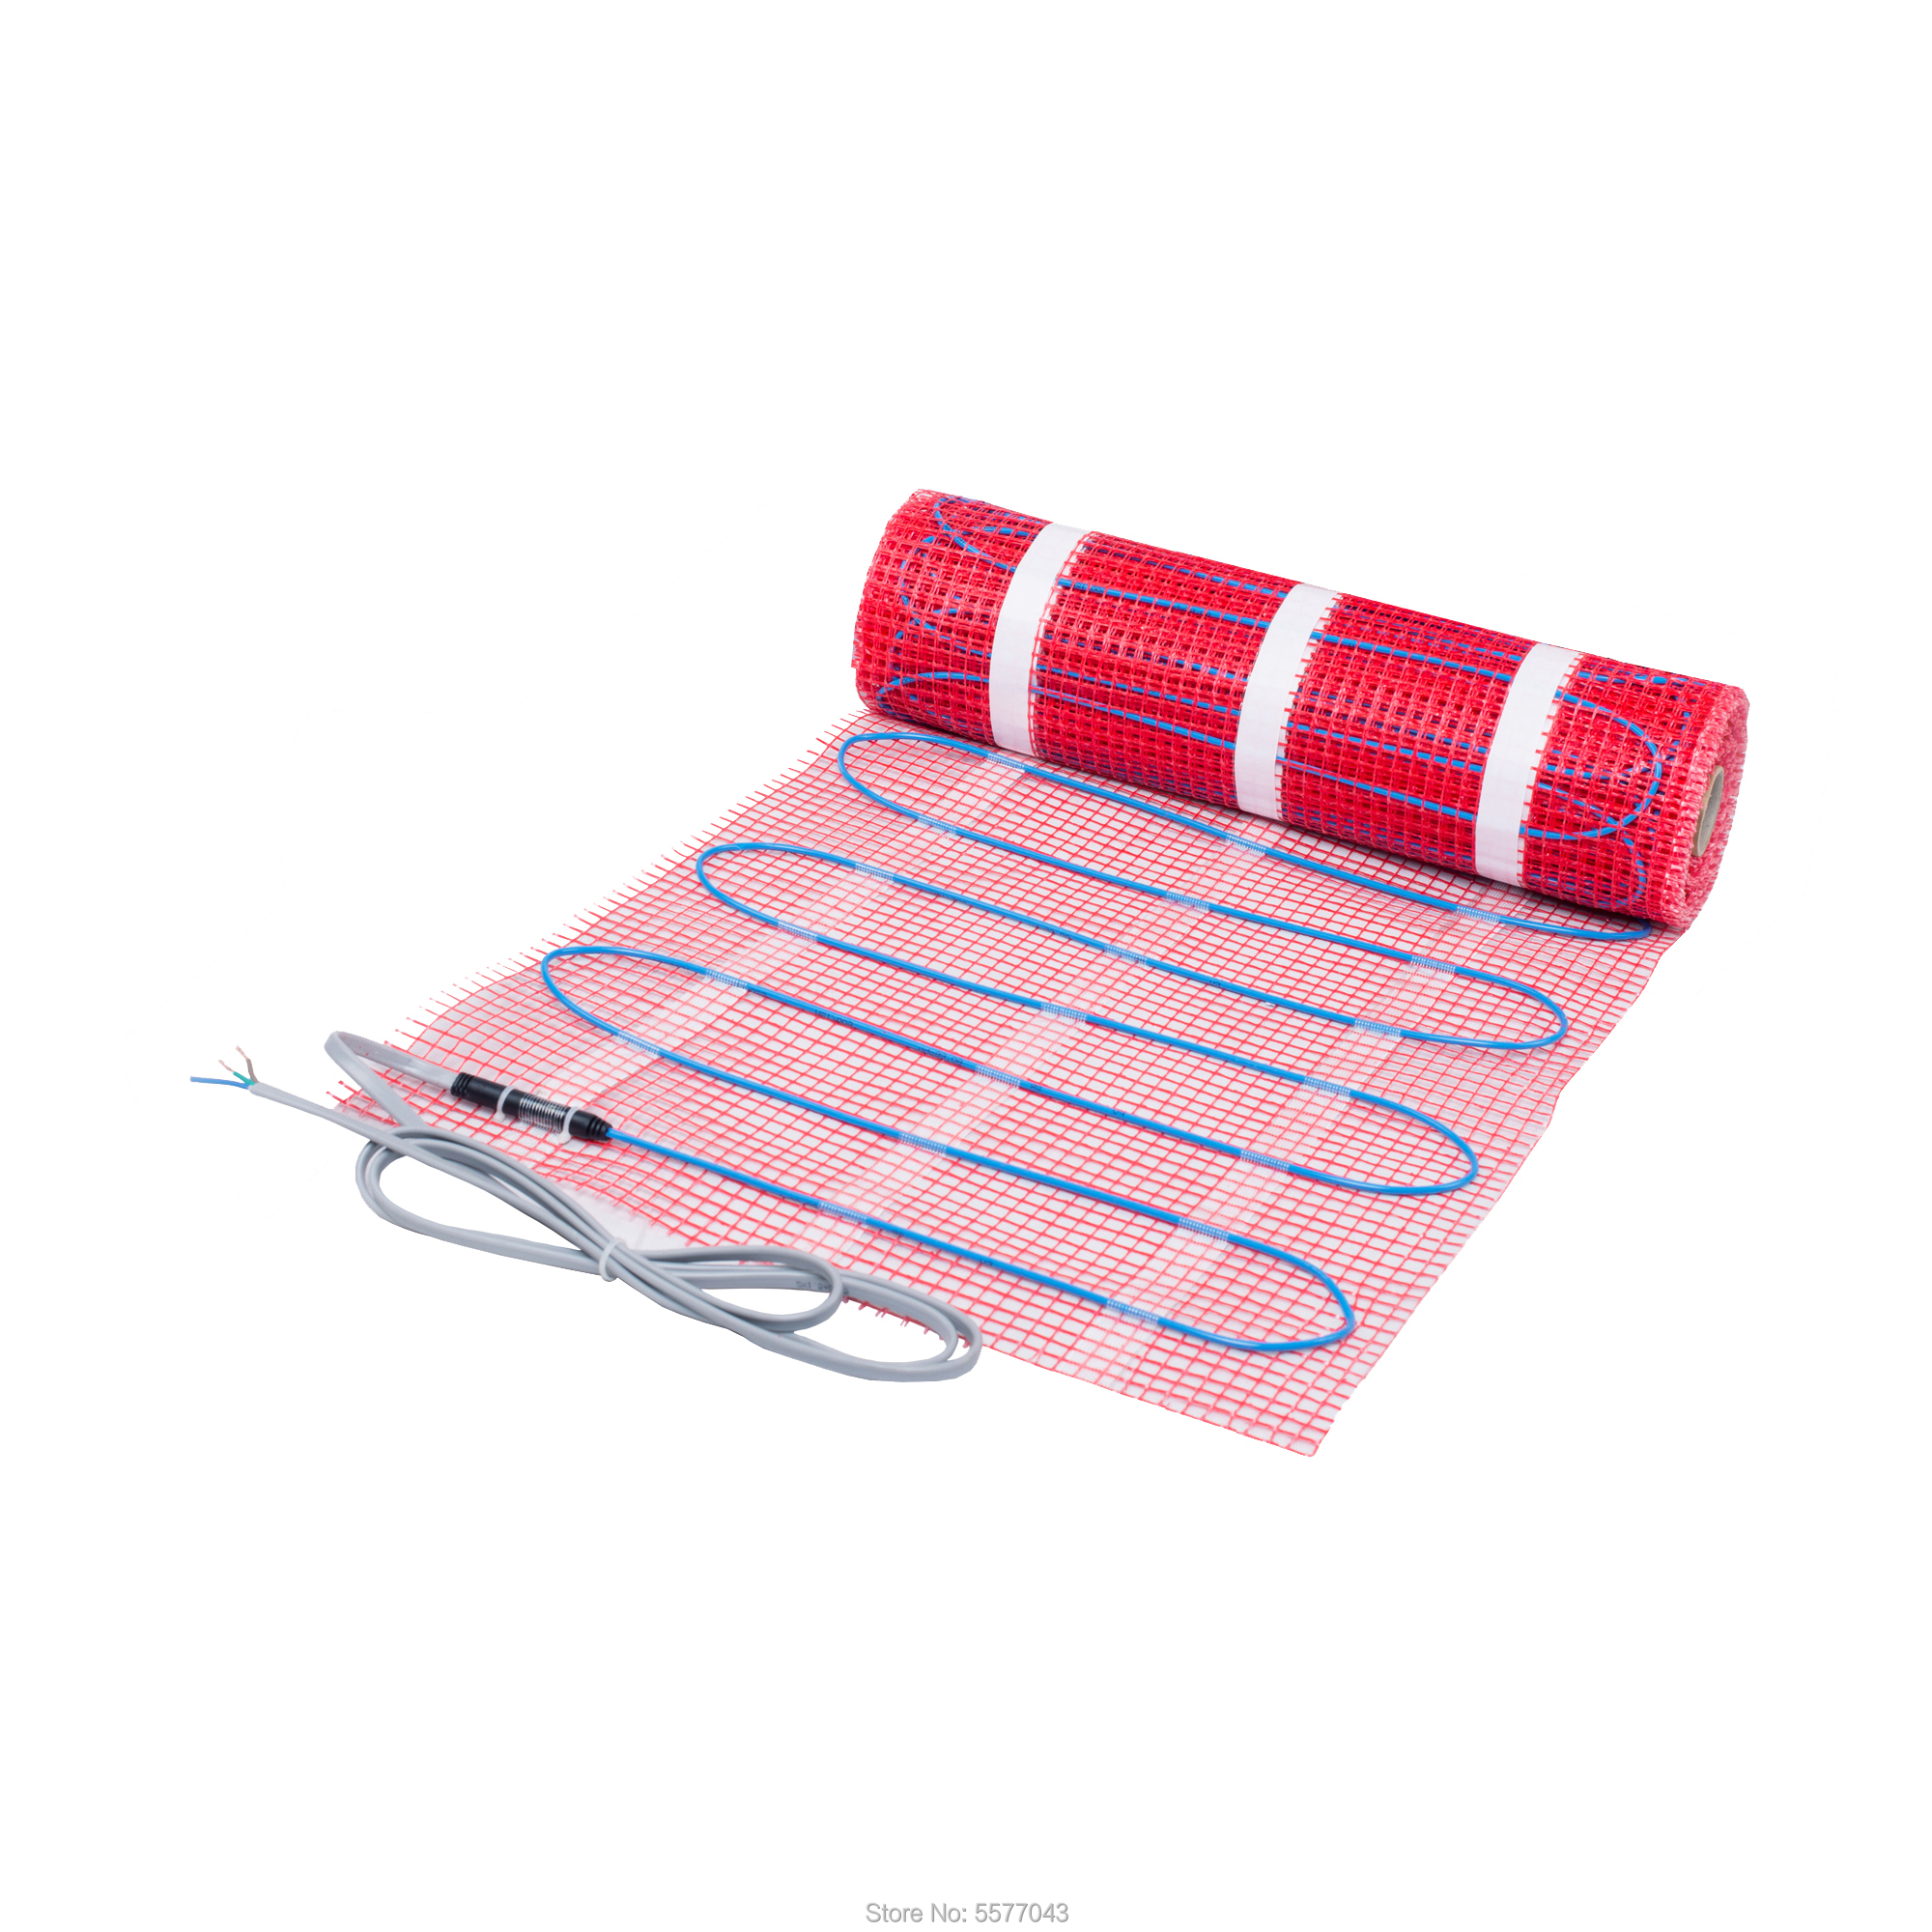 Electrical Underfloor Heating Mat For Bathroom 230V